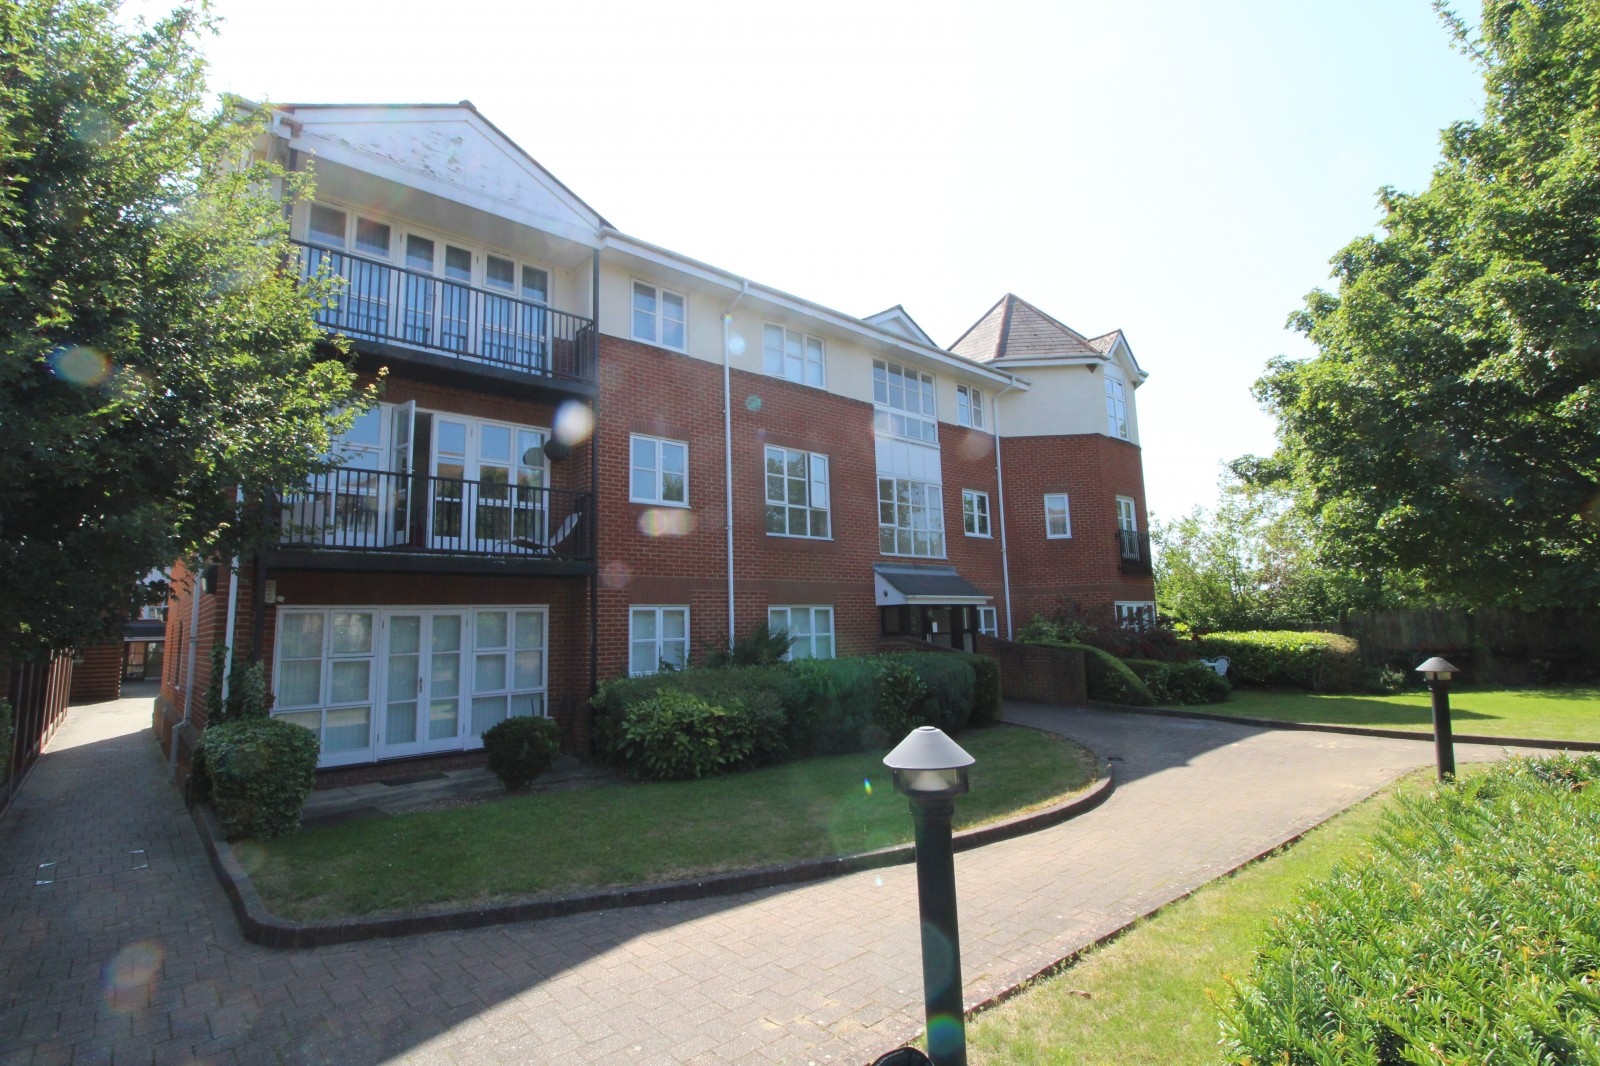 Deyncourt Gardens, Upminster, Essex, RM14